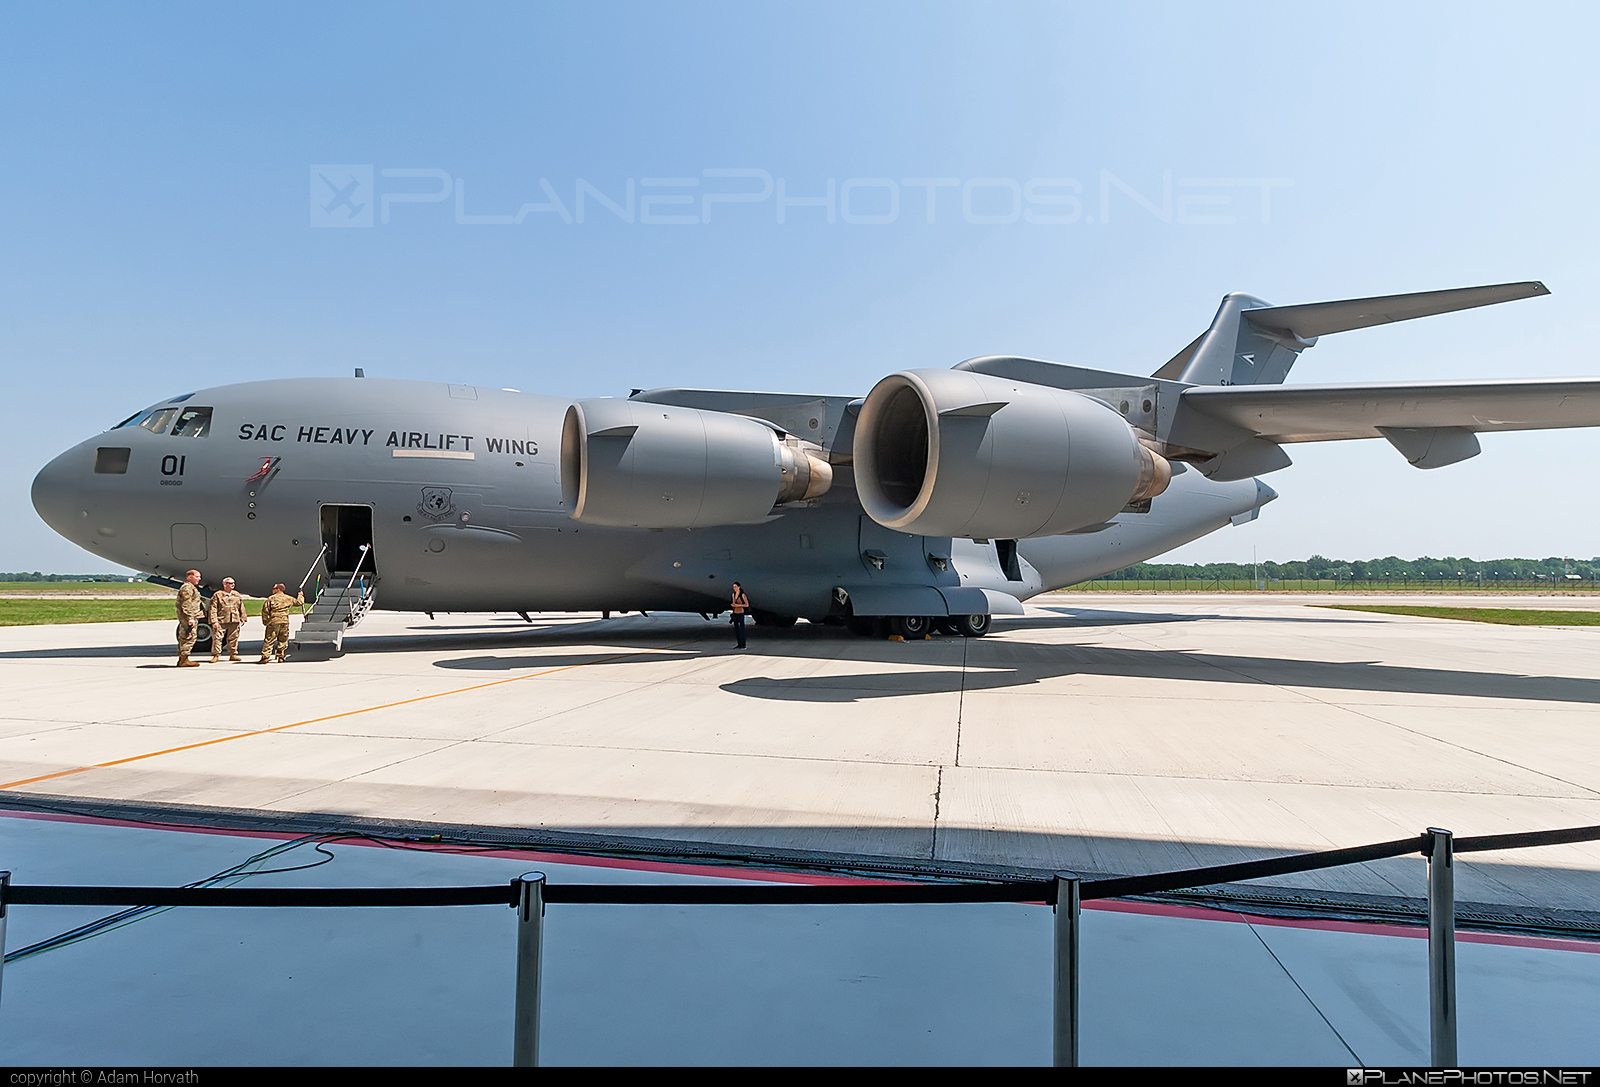 Boeing C-17A Globemaster III - 01 operated by NATO Strategic Airlift Capability (SAC) #boeing #c17 #c17globemaster #globemaster #globemasteriii #natostrategicairliftcapability #strategicairliftcapability